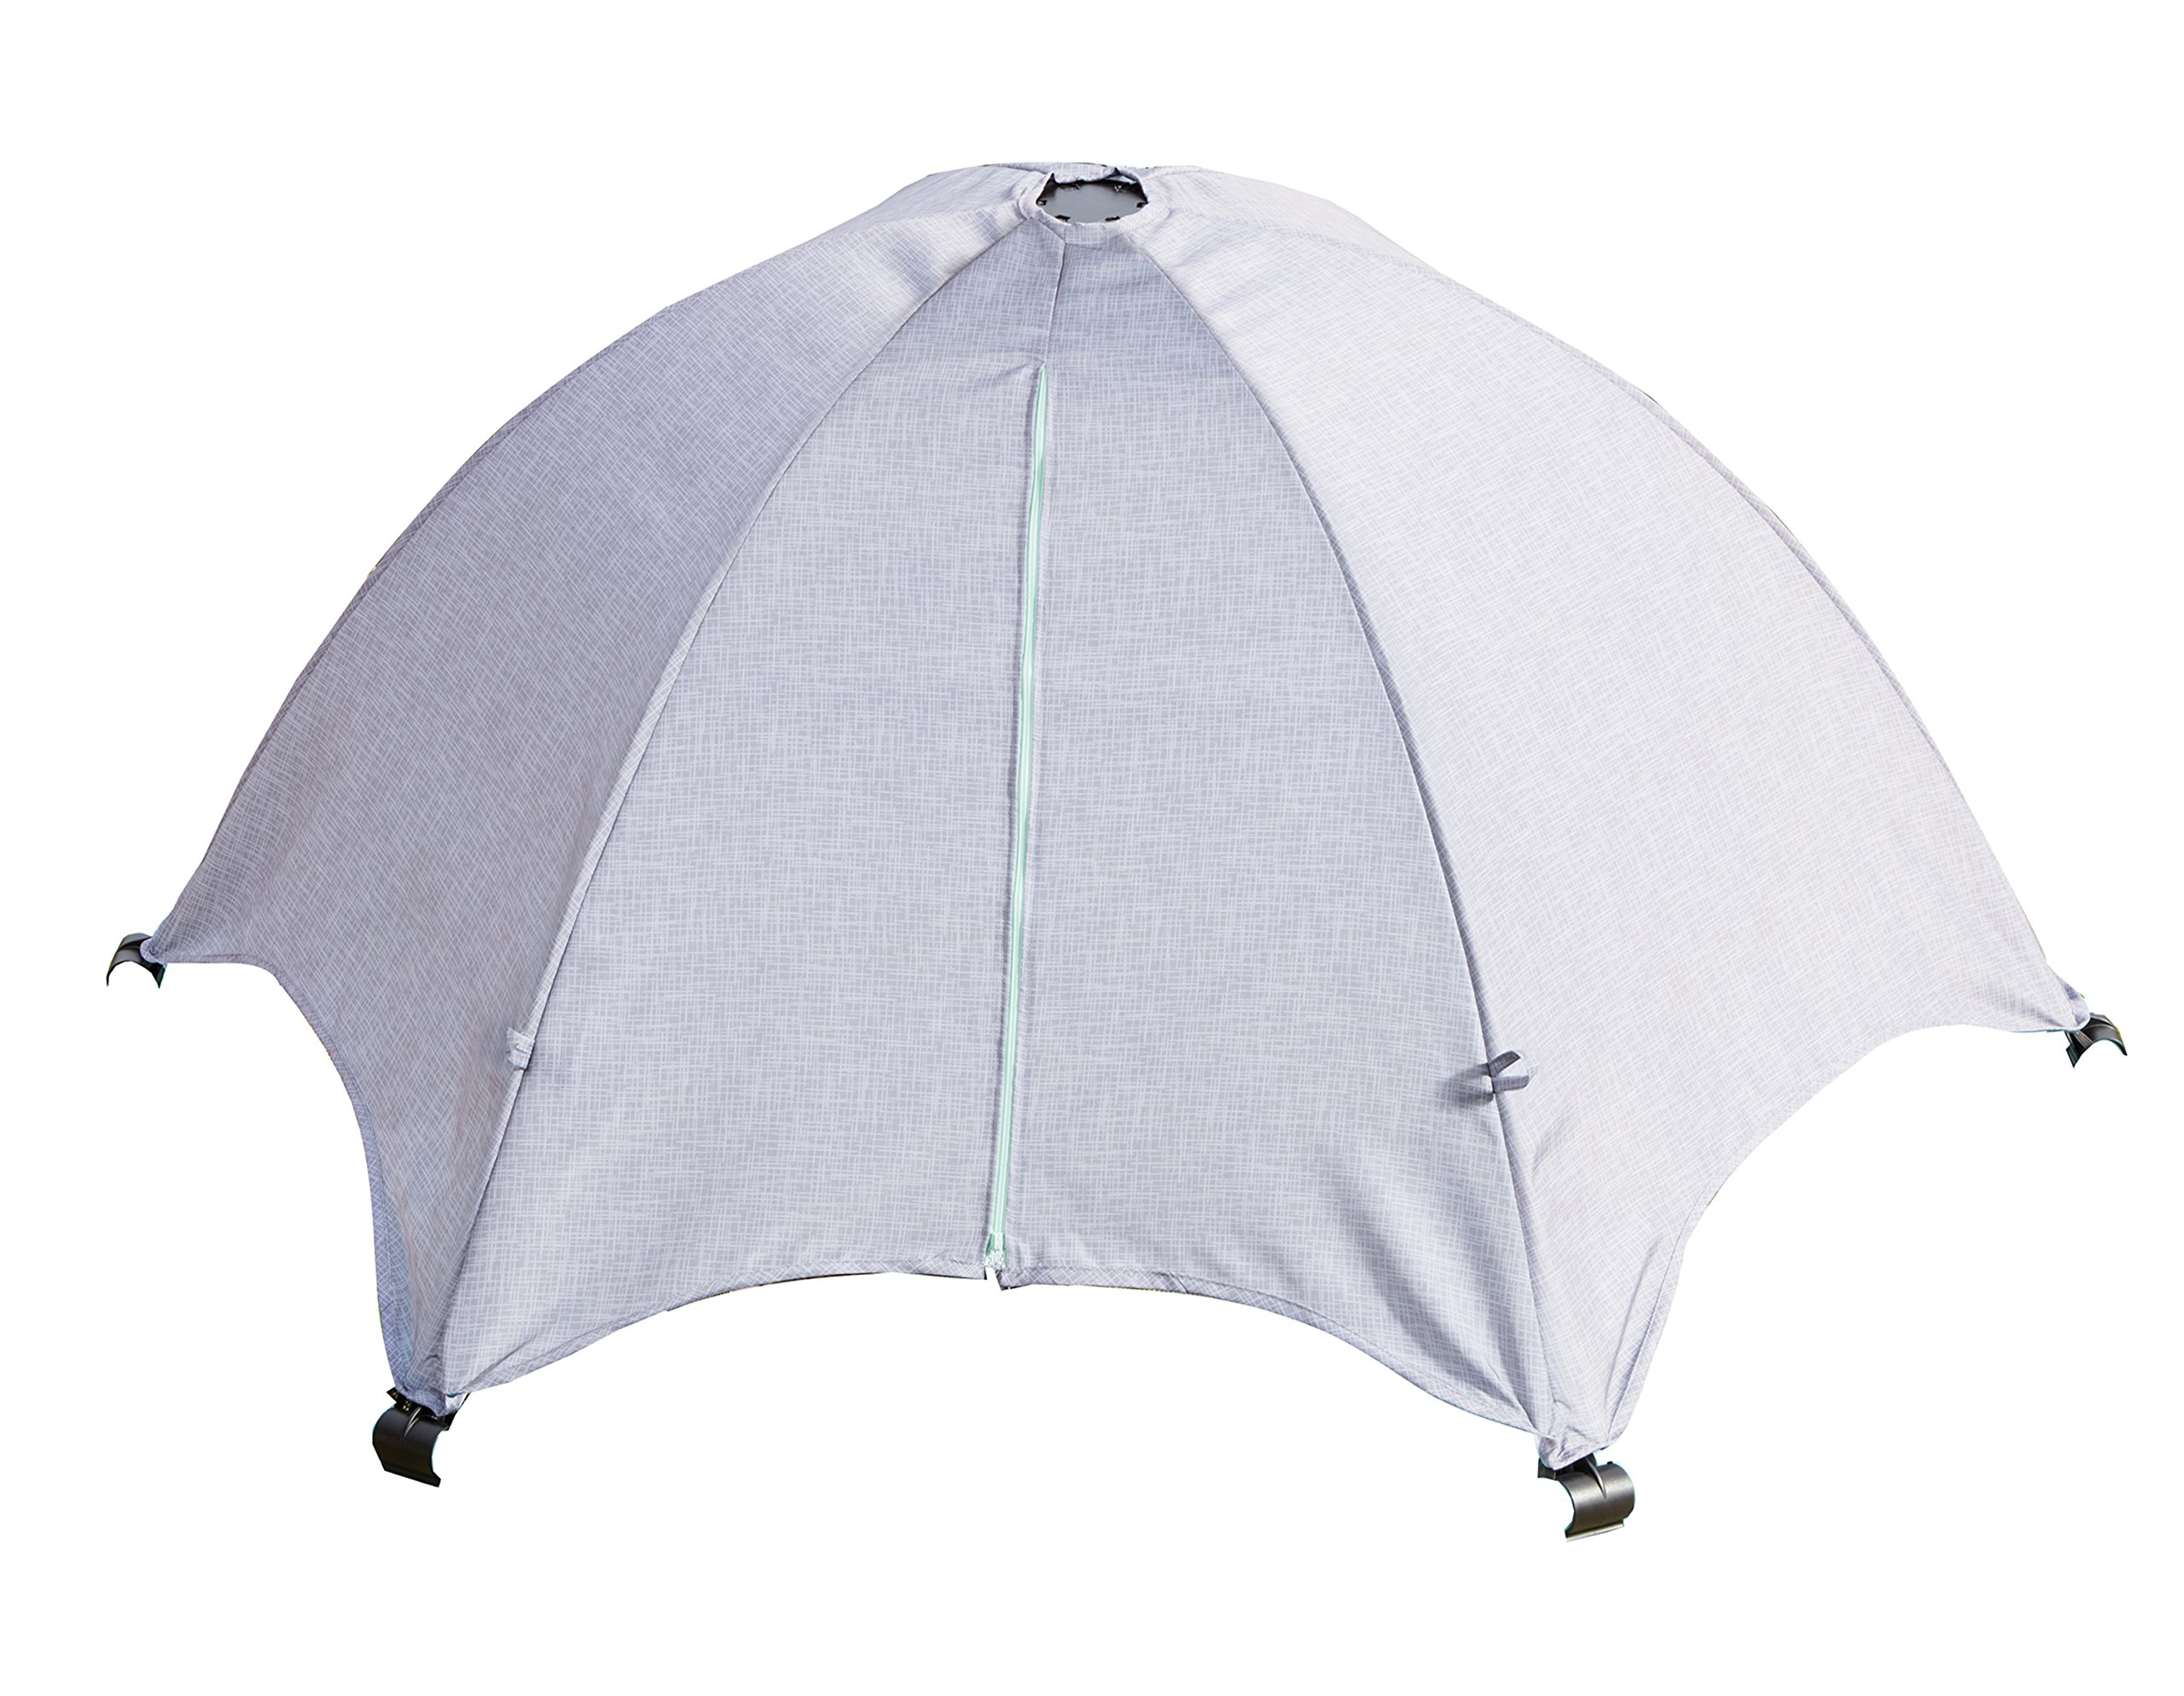 Summer Infant Pop N Play Deluxe UV Canopy  Full coverage canopy blocks 98% of uva/uvb rays Two zip-open panels for easy access and optimal air flow Fashionable textured grey finish 1